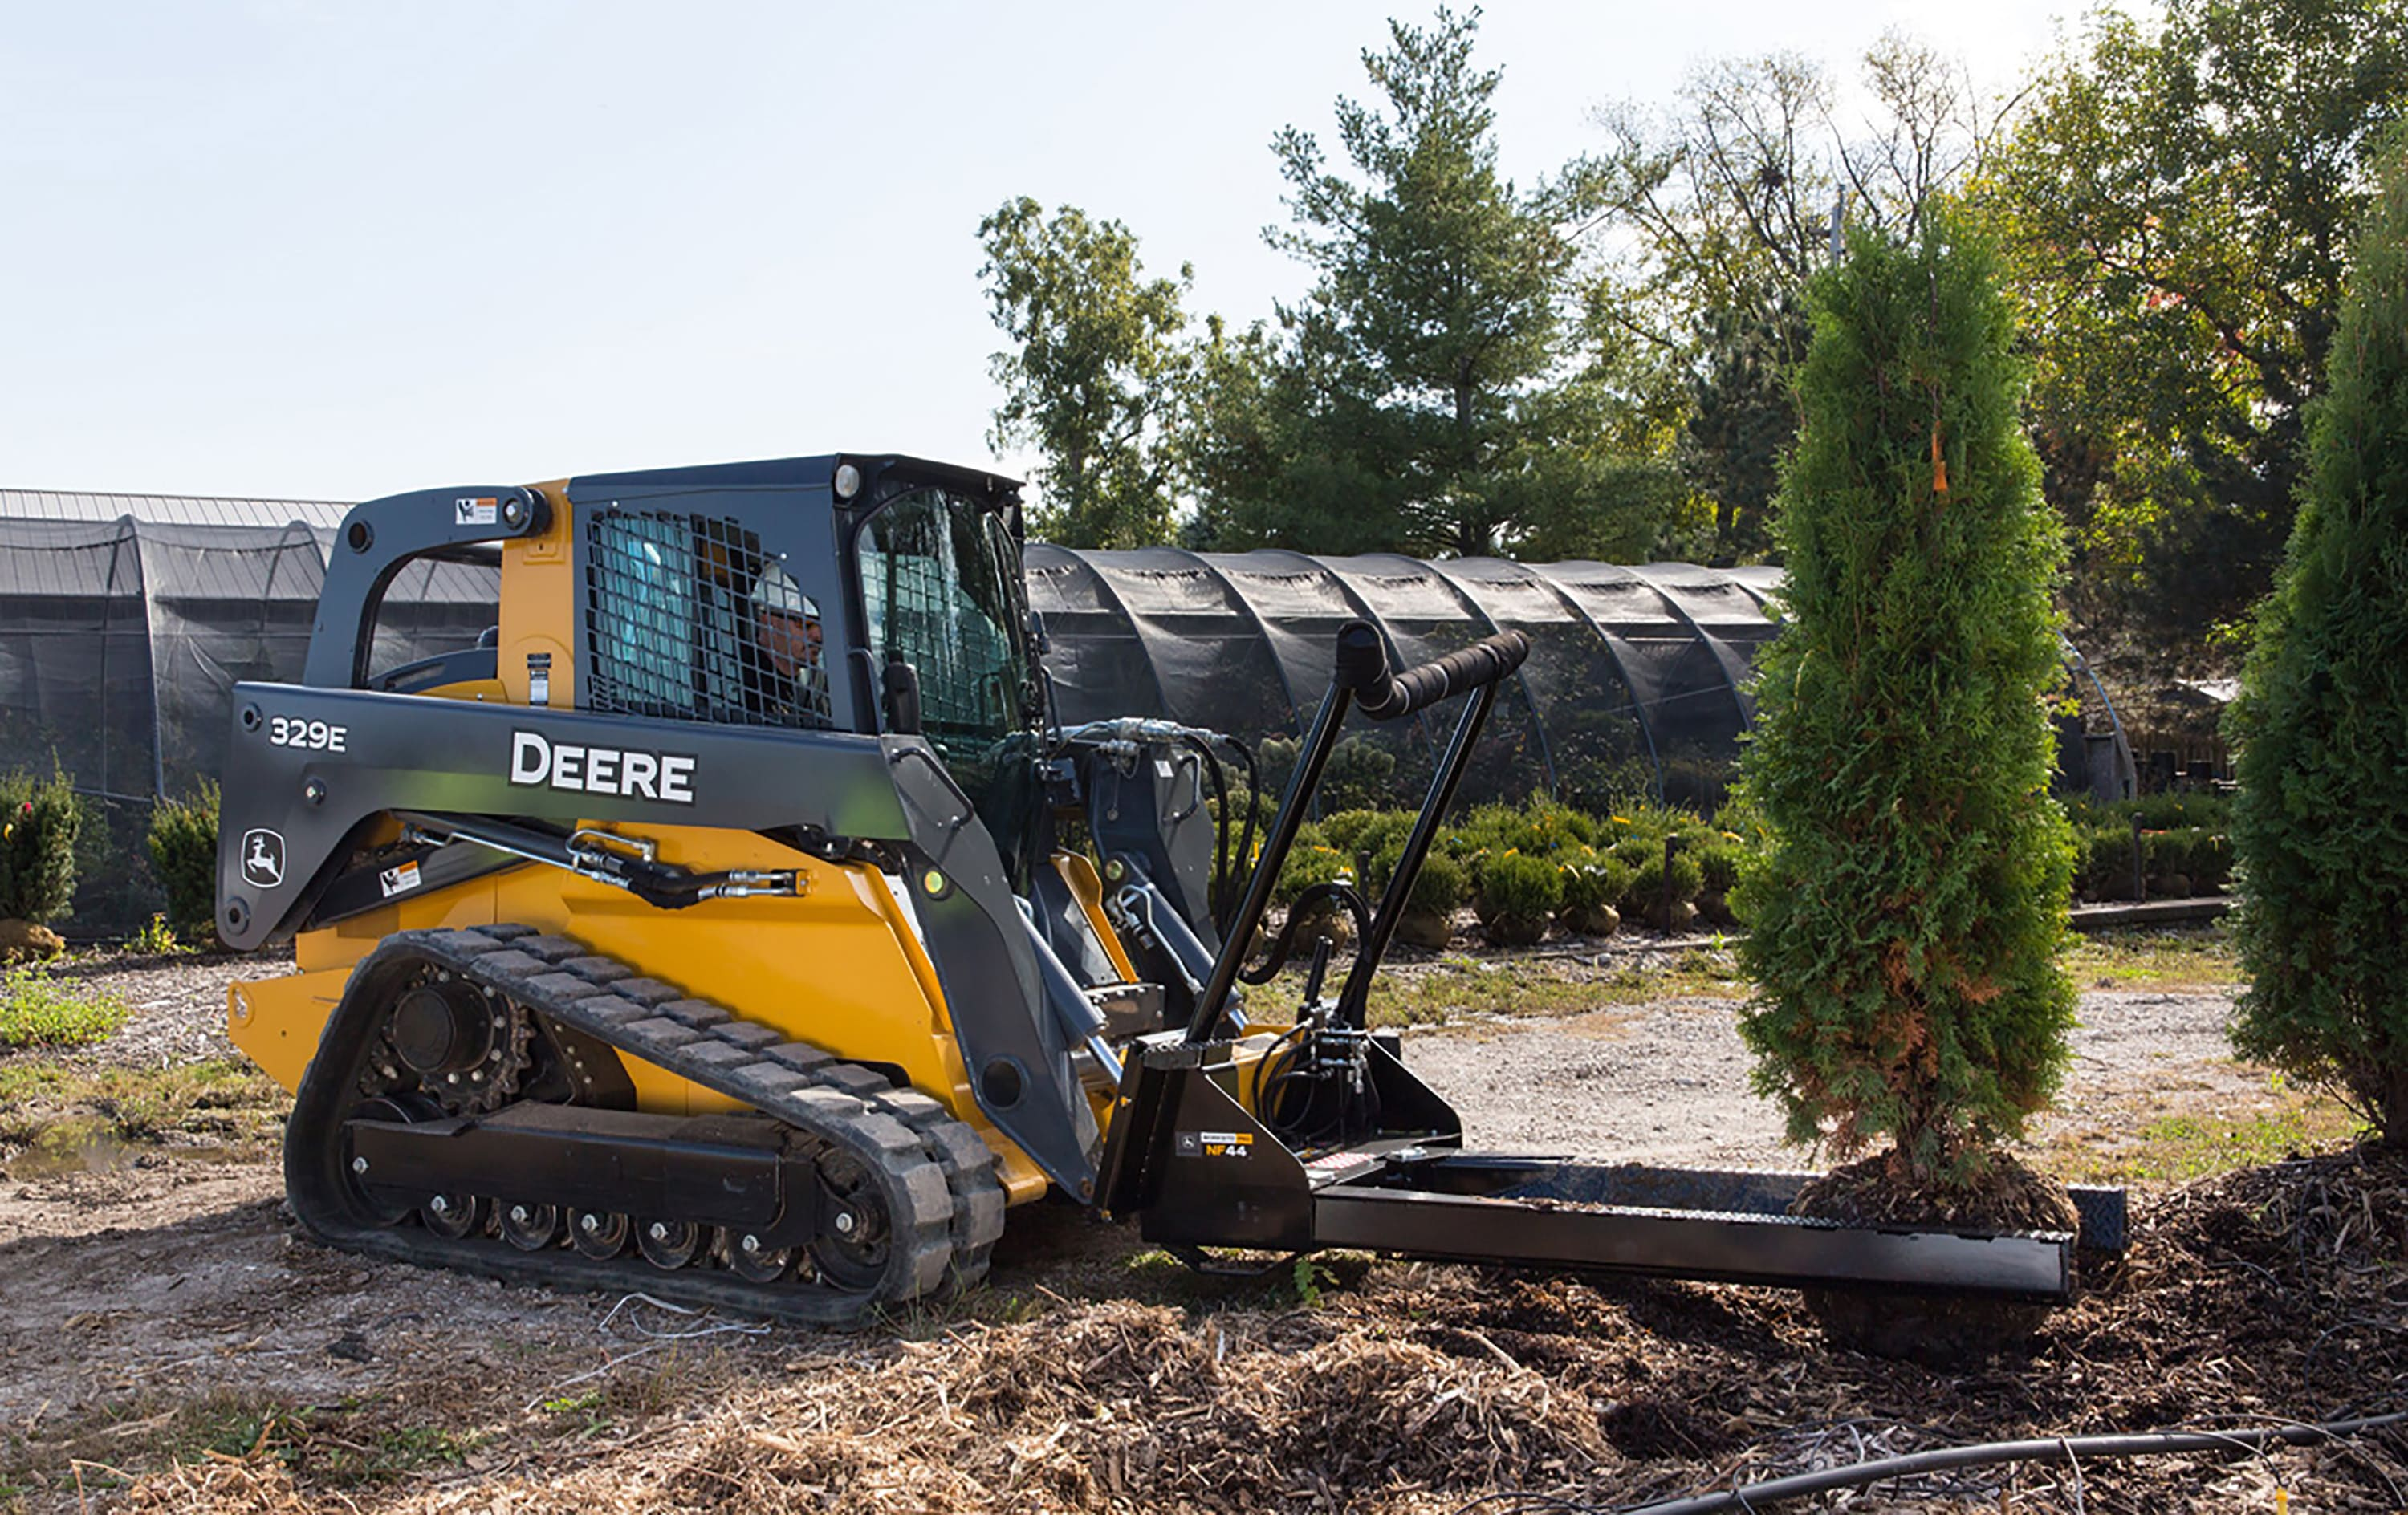 The John Deere 329E Skid Steer with the Nursery Fork attachment approaches a tree to transport